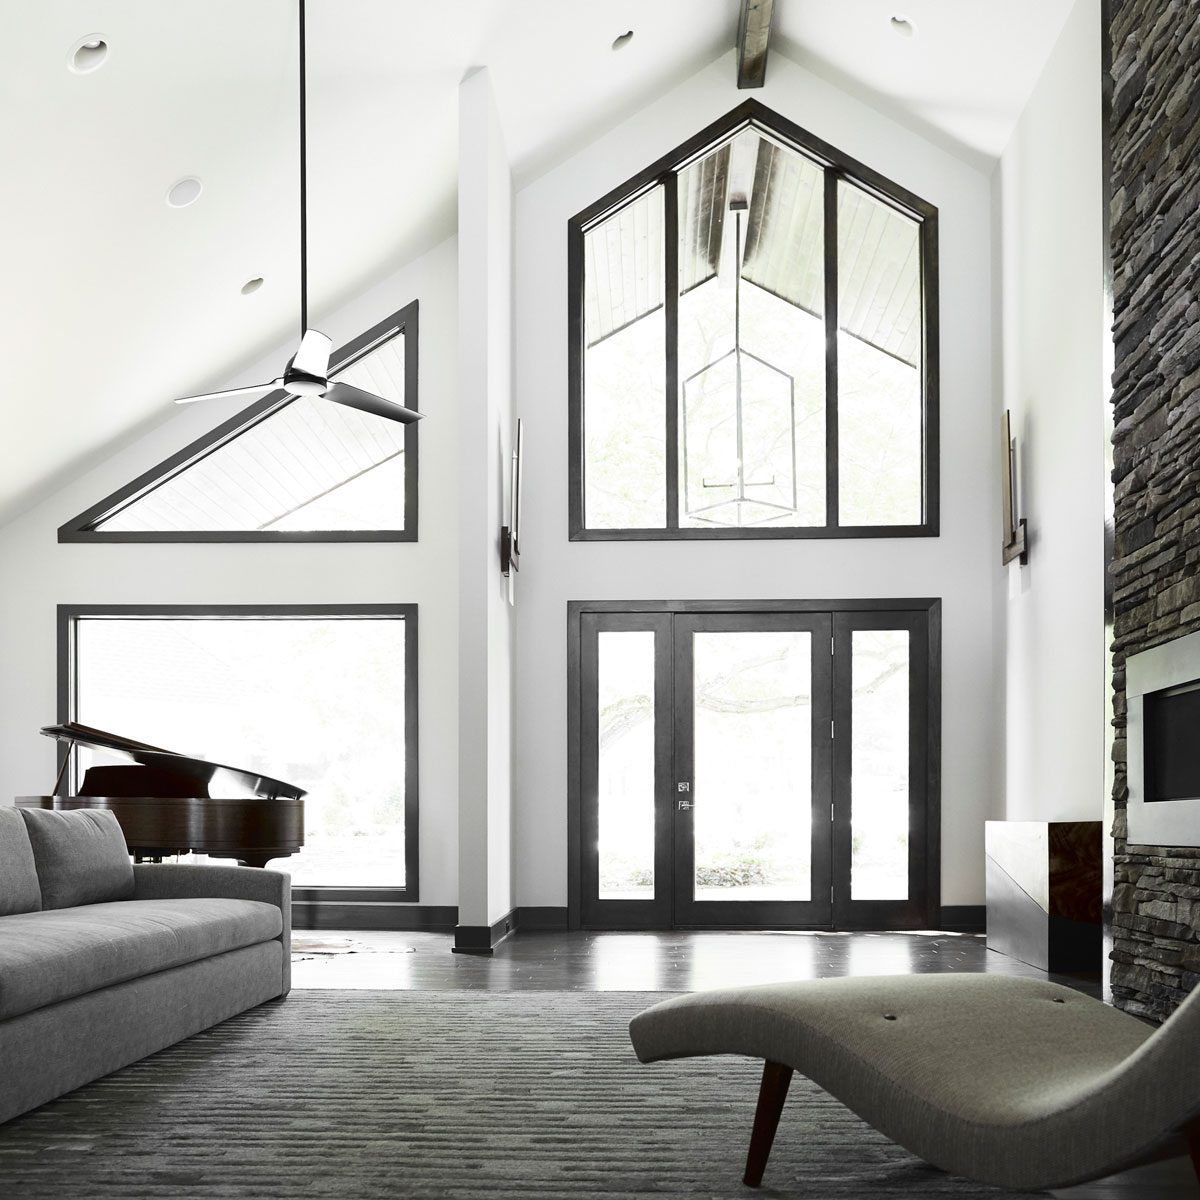 Refresh Your Home With These Contemporary-Style Decor Ideas | Family ...